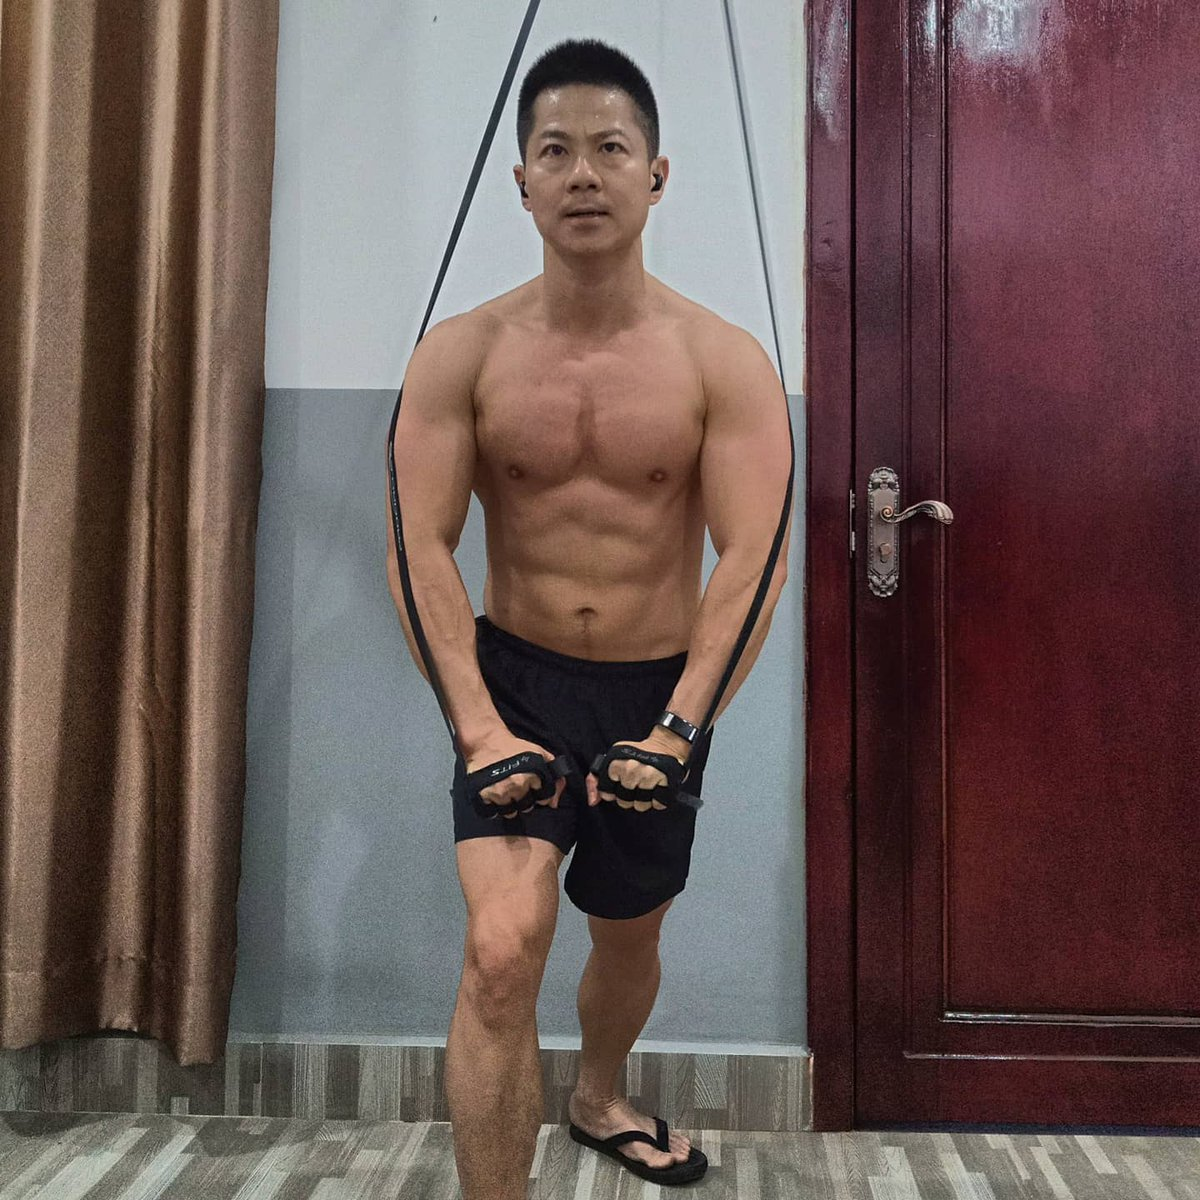 """""""Life is like working out in the gym. You get to choose to make it hard or make it easy. And yet, it's the hard time that makes you grow better, and stronger."""" - Suhendra Cheng #fitnessmotivation #fitover40 #fitbody #home #gym #workouts #lifestylepic.twitter.com/V9q784da43"""